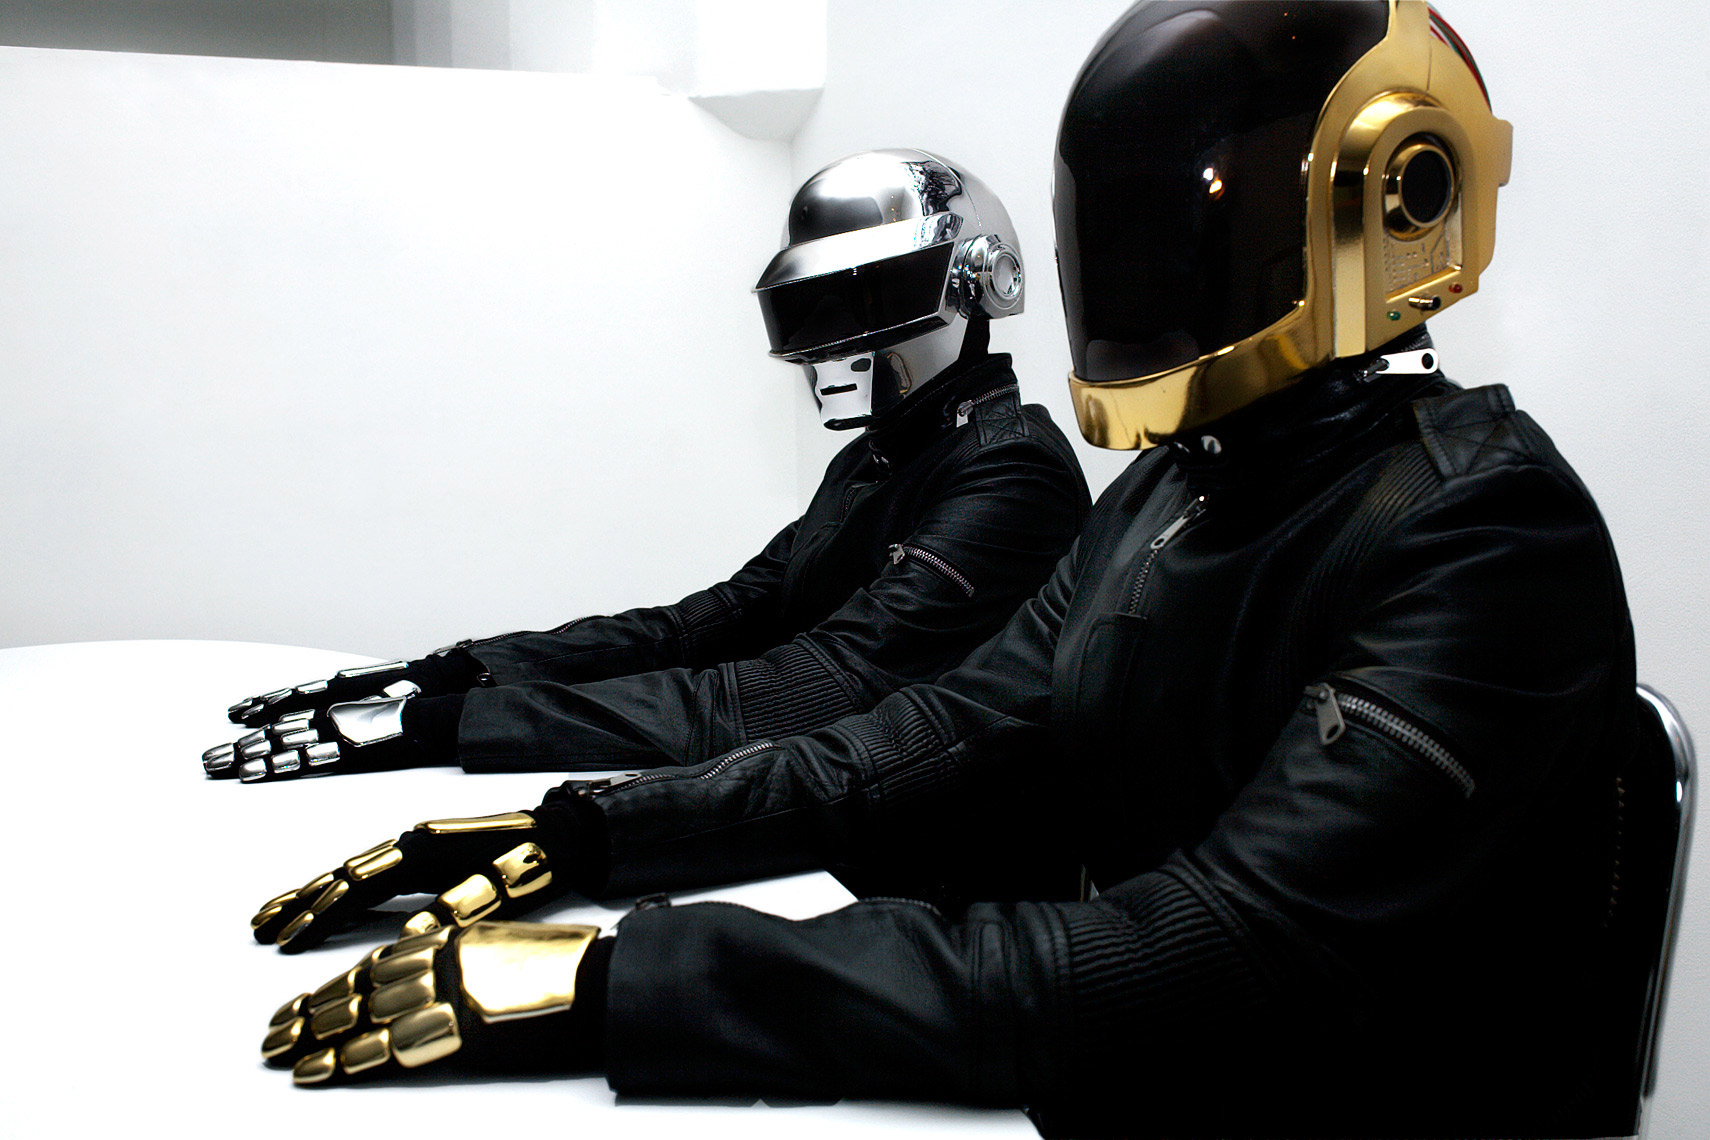 daft punk Celebrity  Portrait Music Photographer